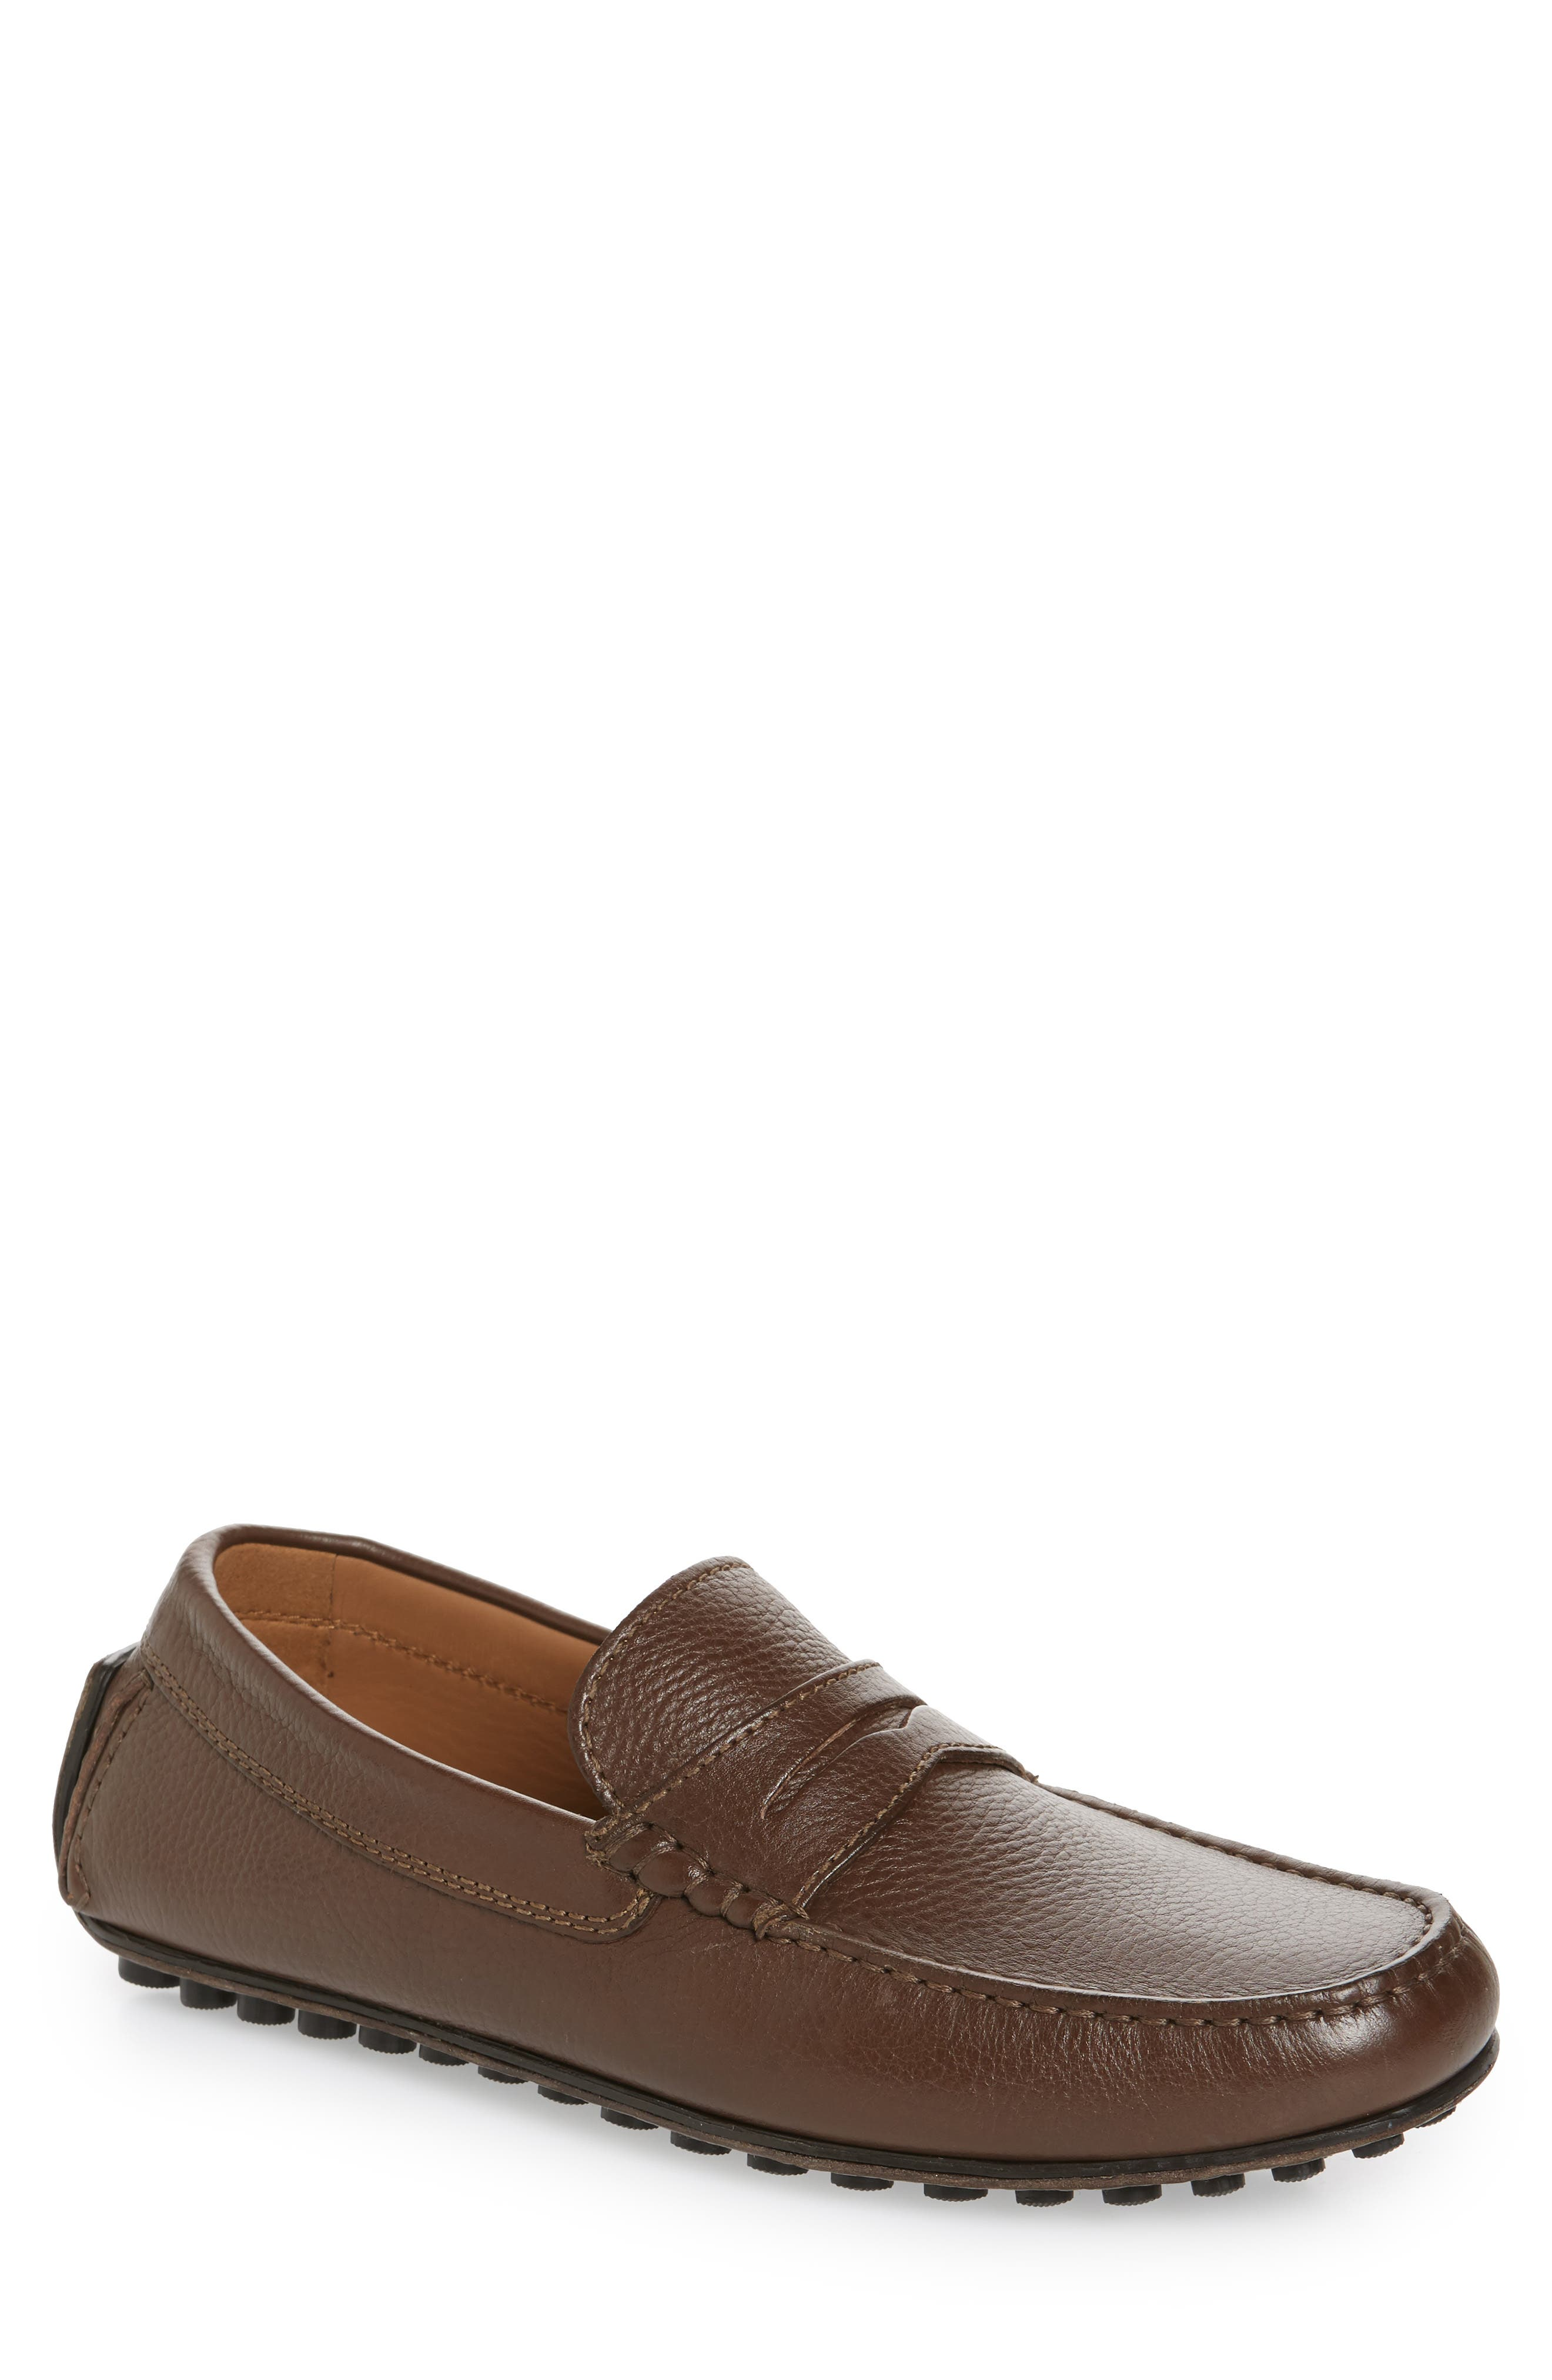 Le Mans Penny Driving Moccasin,                             Main thumbnail 1, color,                             Brown